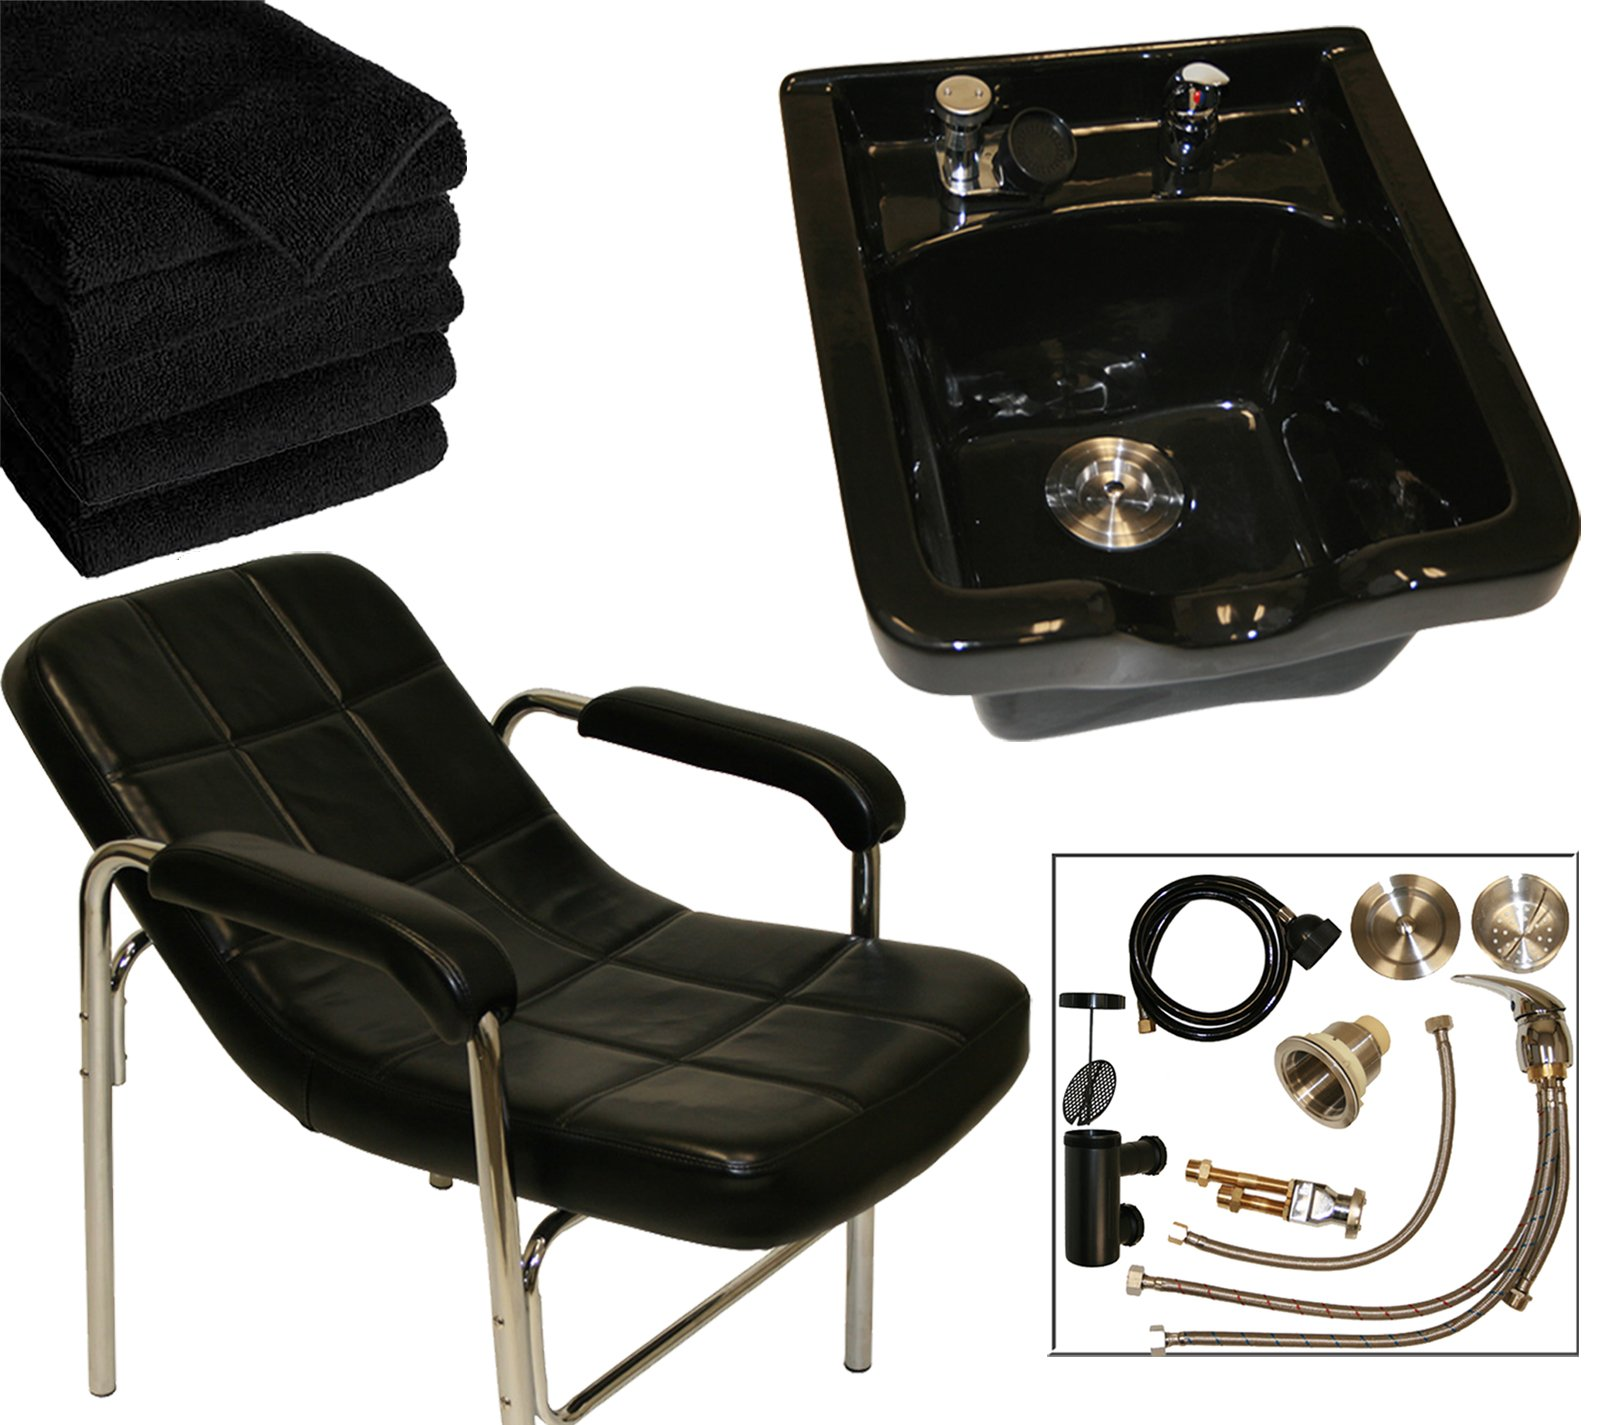 LCL Beauty Shampoo Package: Comfort-Curve Contemporary Slingback Shampoo Chair & Black Ceramic Shampoo Bowl